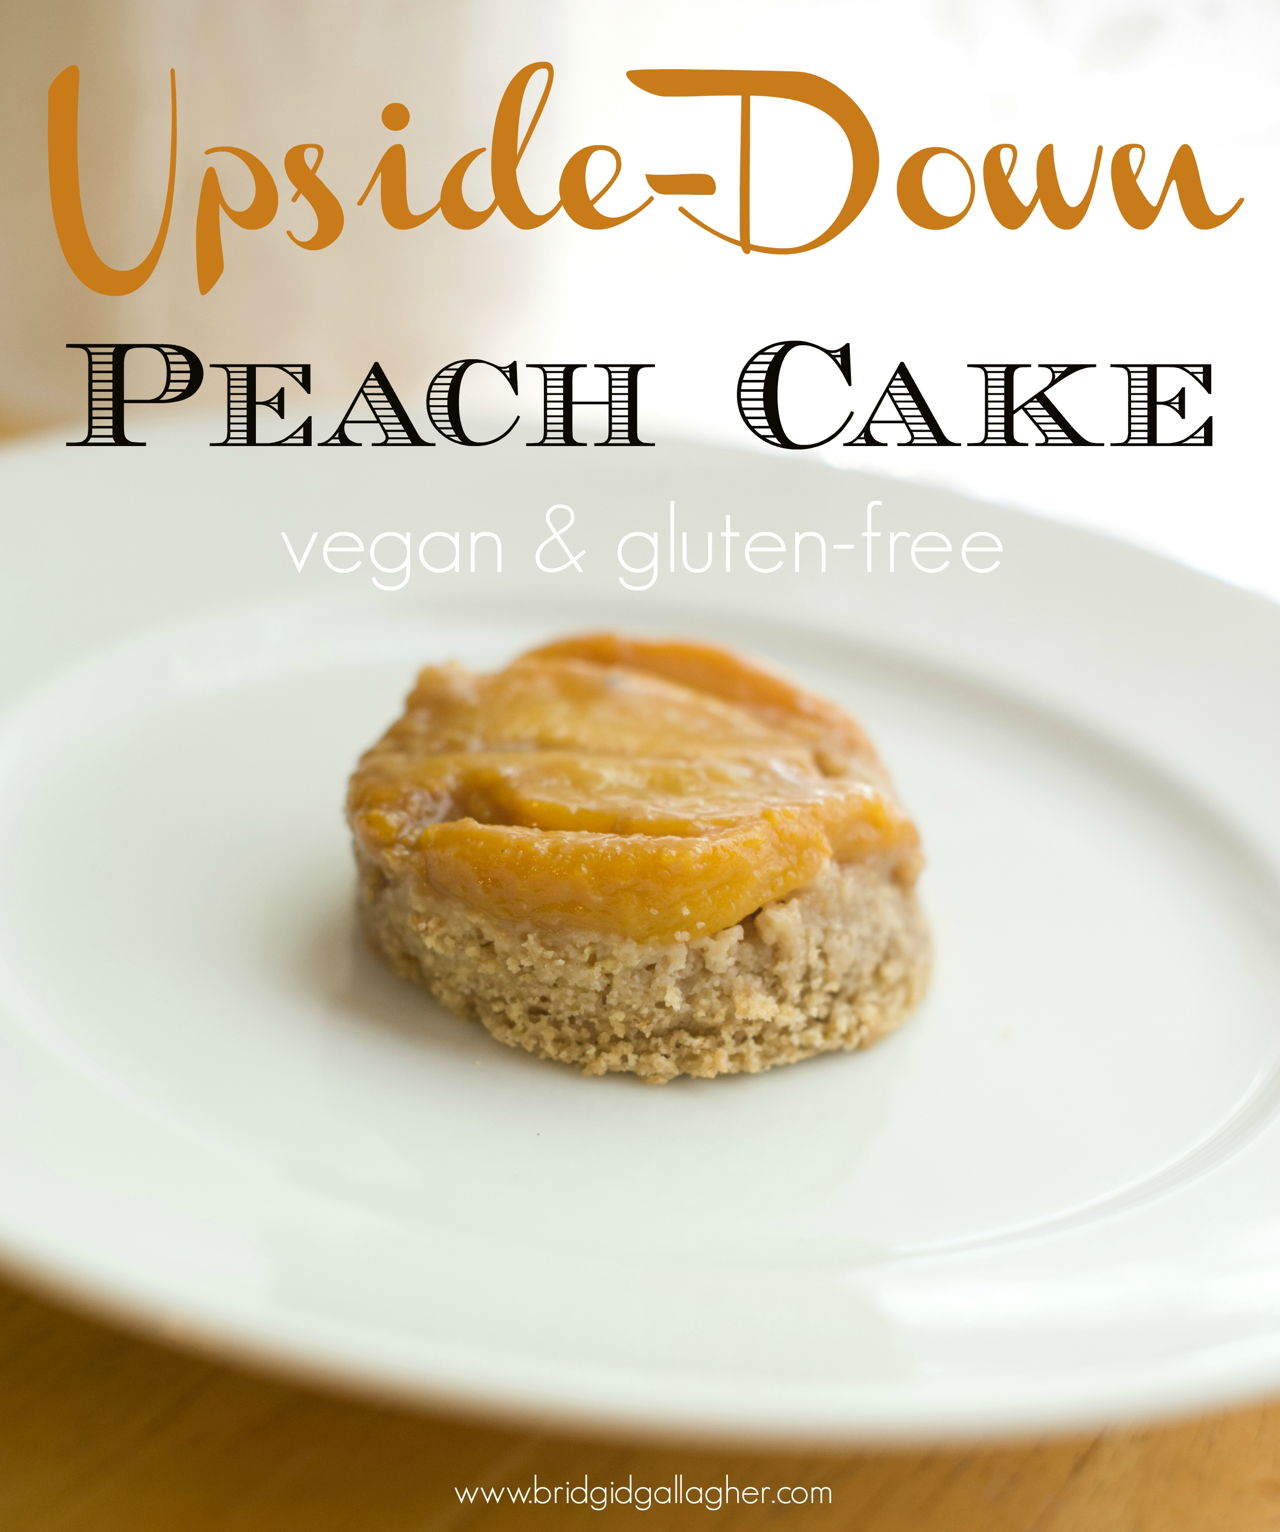 Peach Upside-down Cake Recipe // vegan, gluten-free // www.bridgidgallagher.com